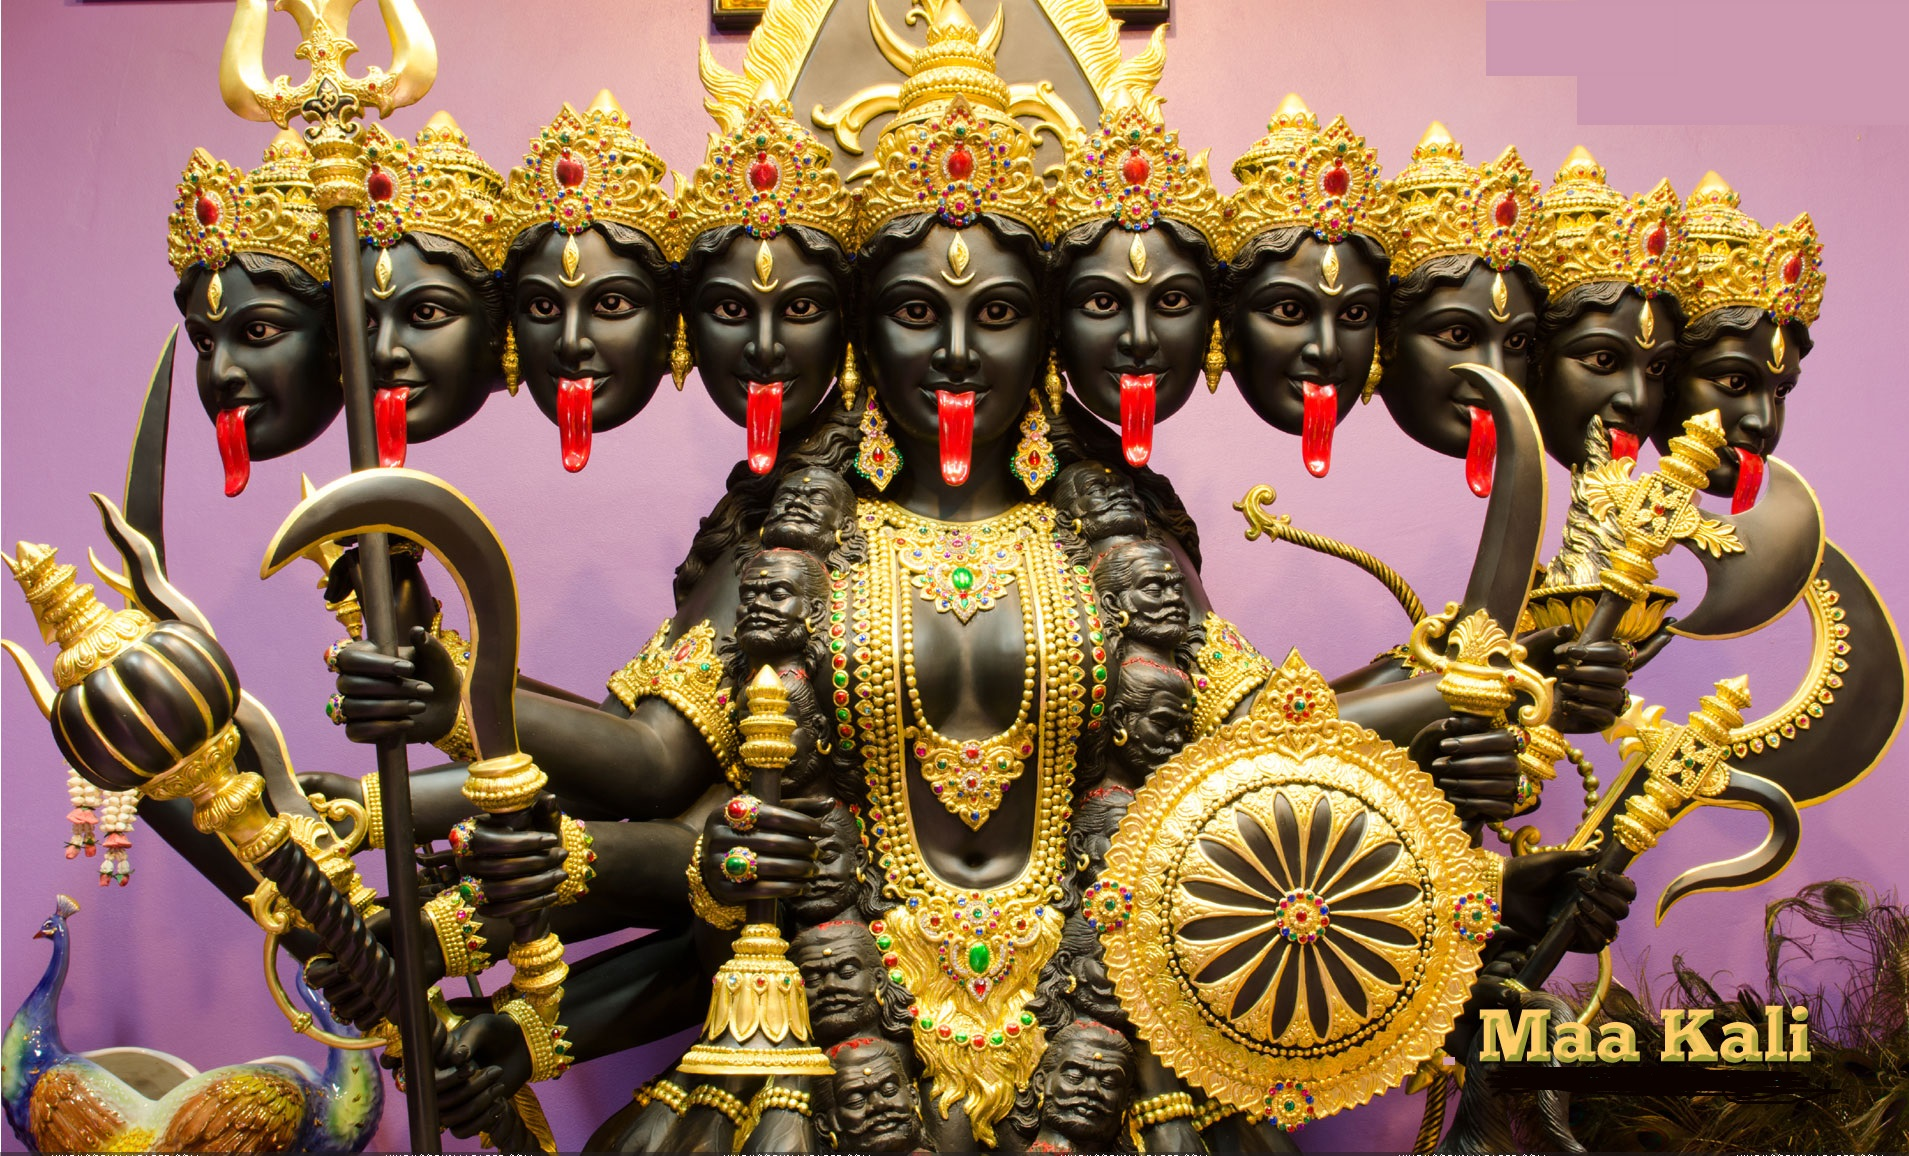 Maa Kali- The  symbolism of kali mata in Hindu culture